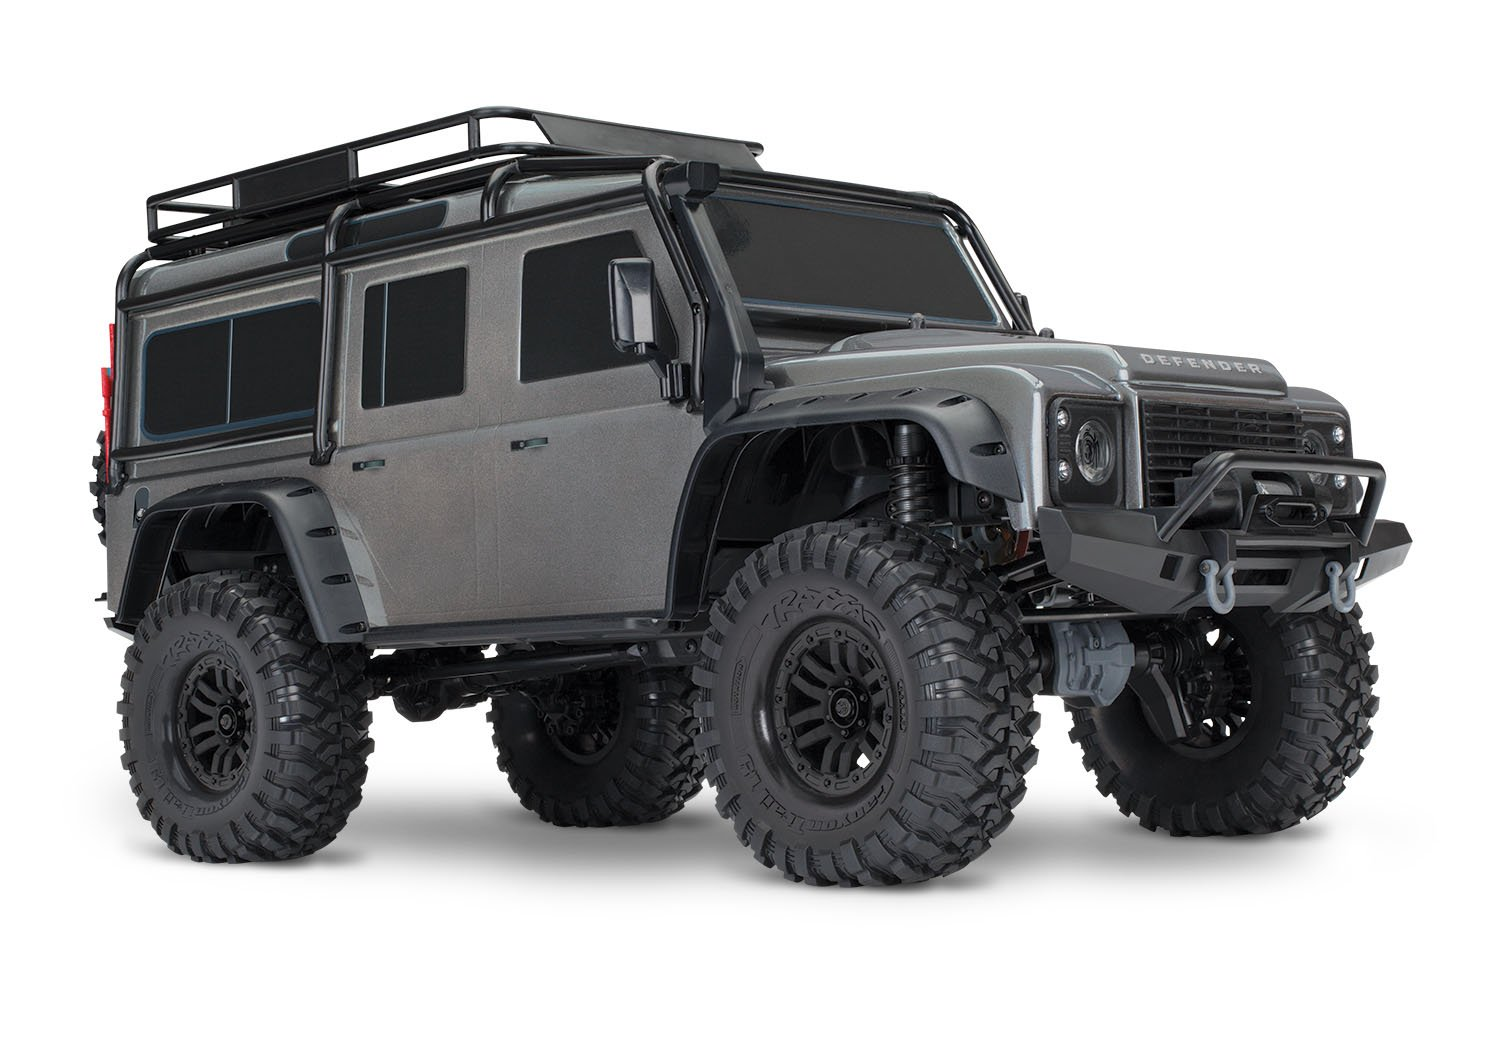 Traxxas 1/10 Scale TRX-4 Scale and Trail Crawler with 2.4GHz TQi Radio, Silver